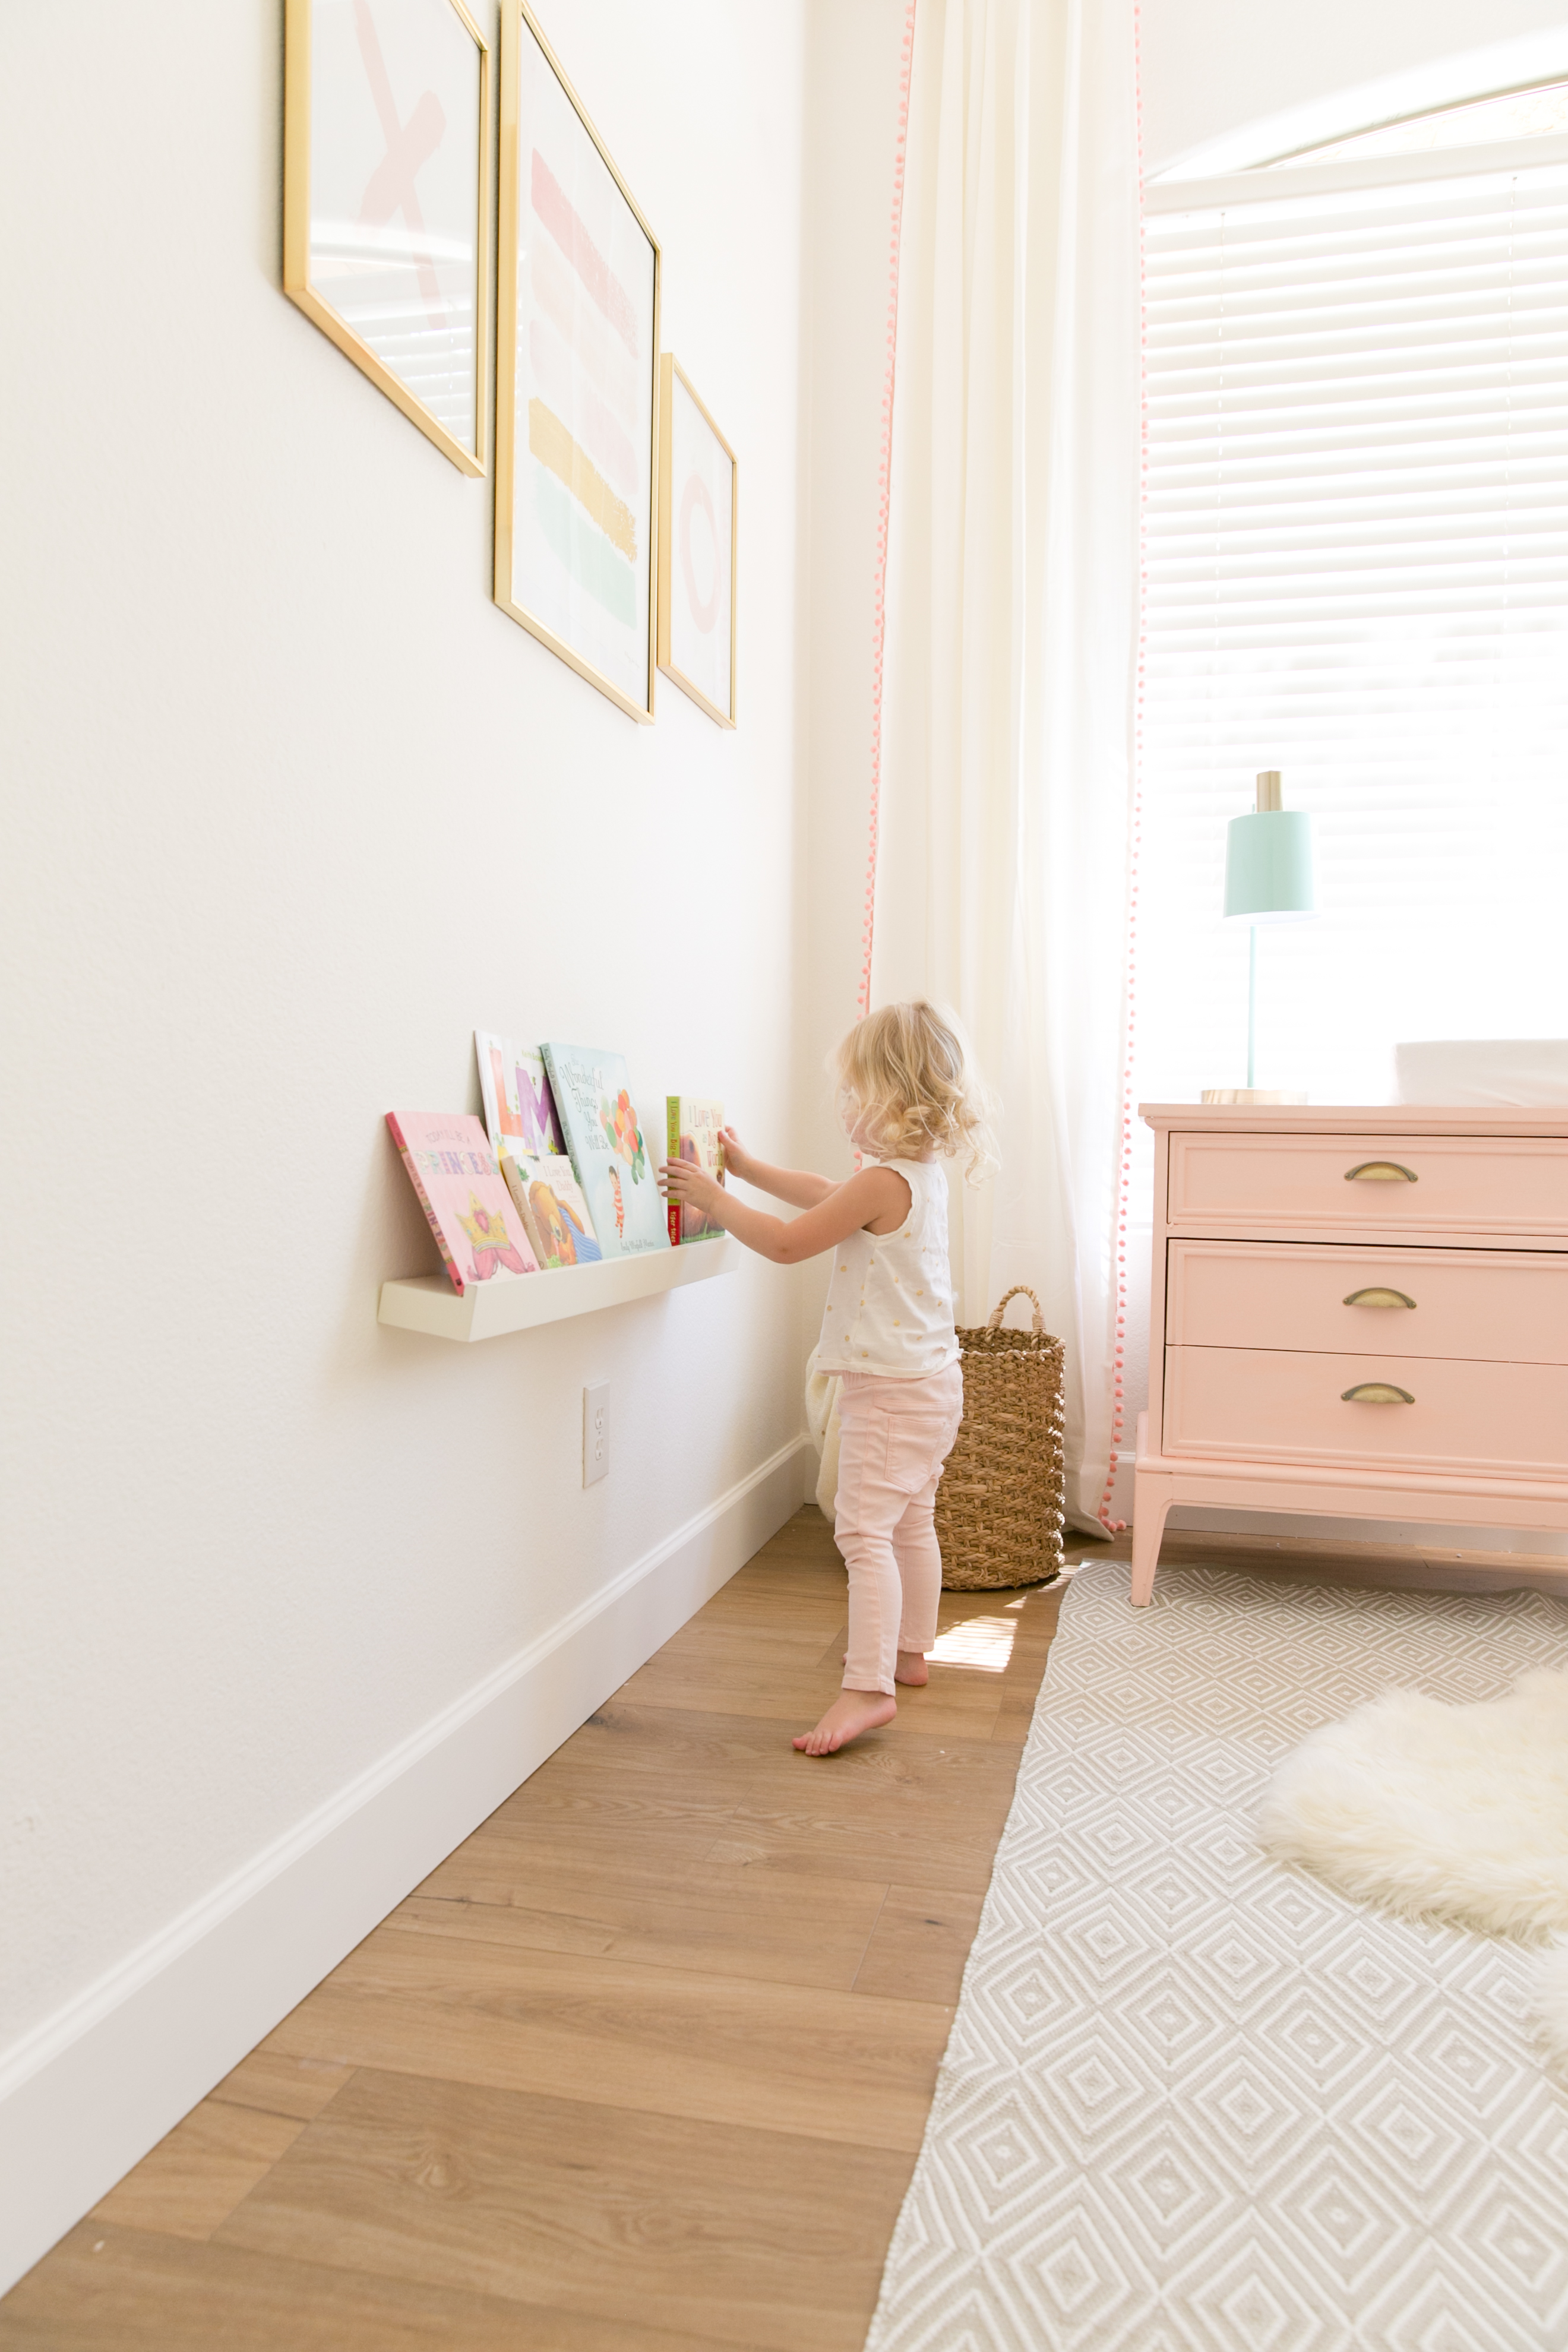 Wall Book Shelf in Nursery